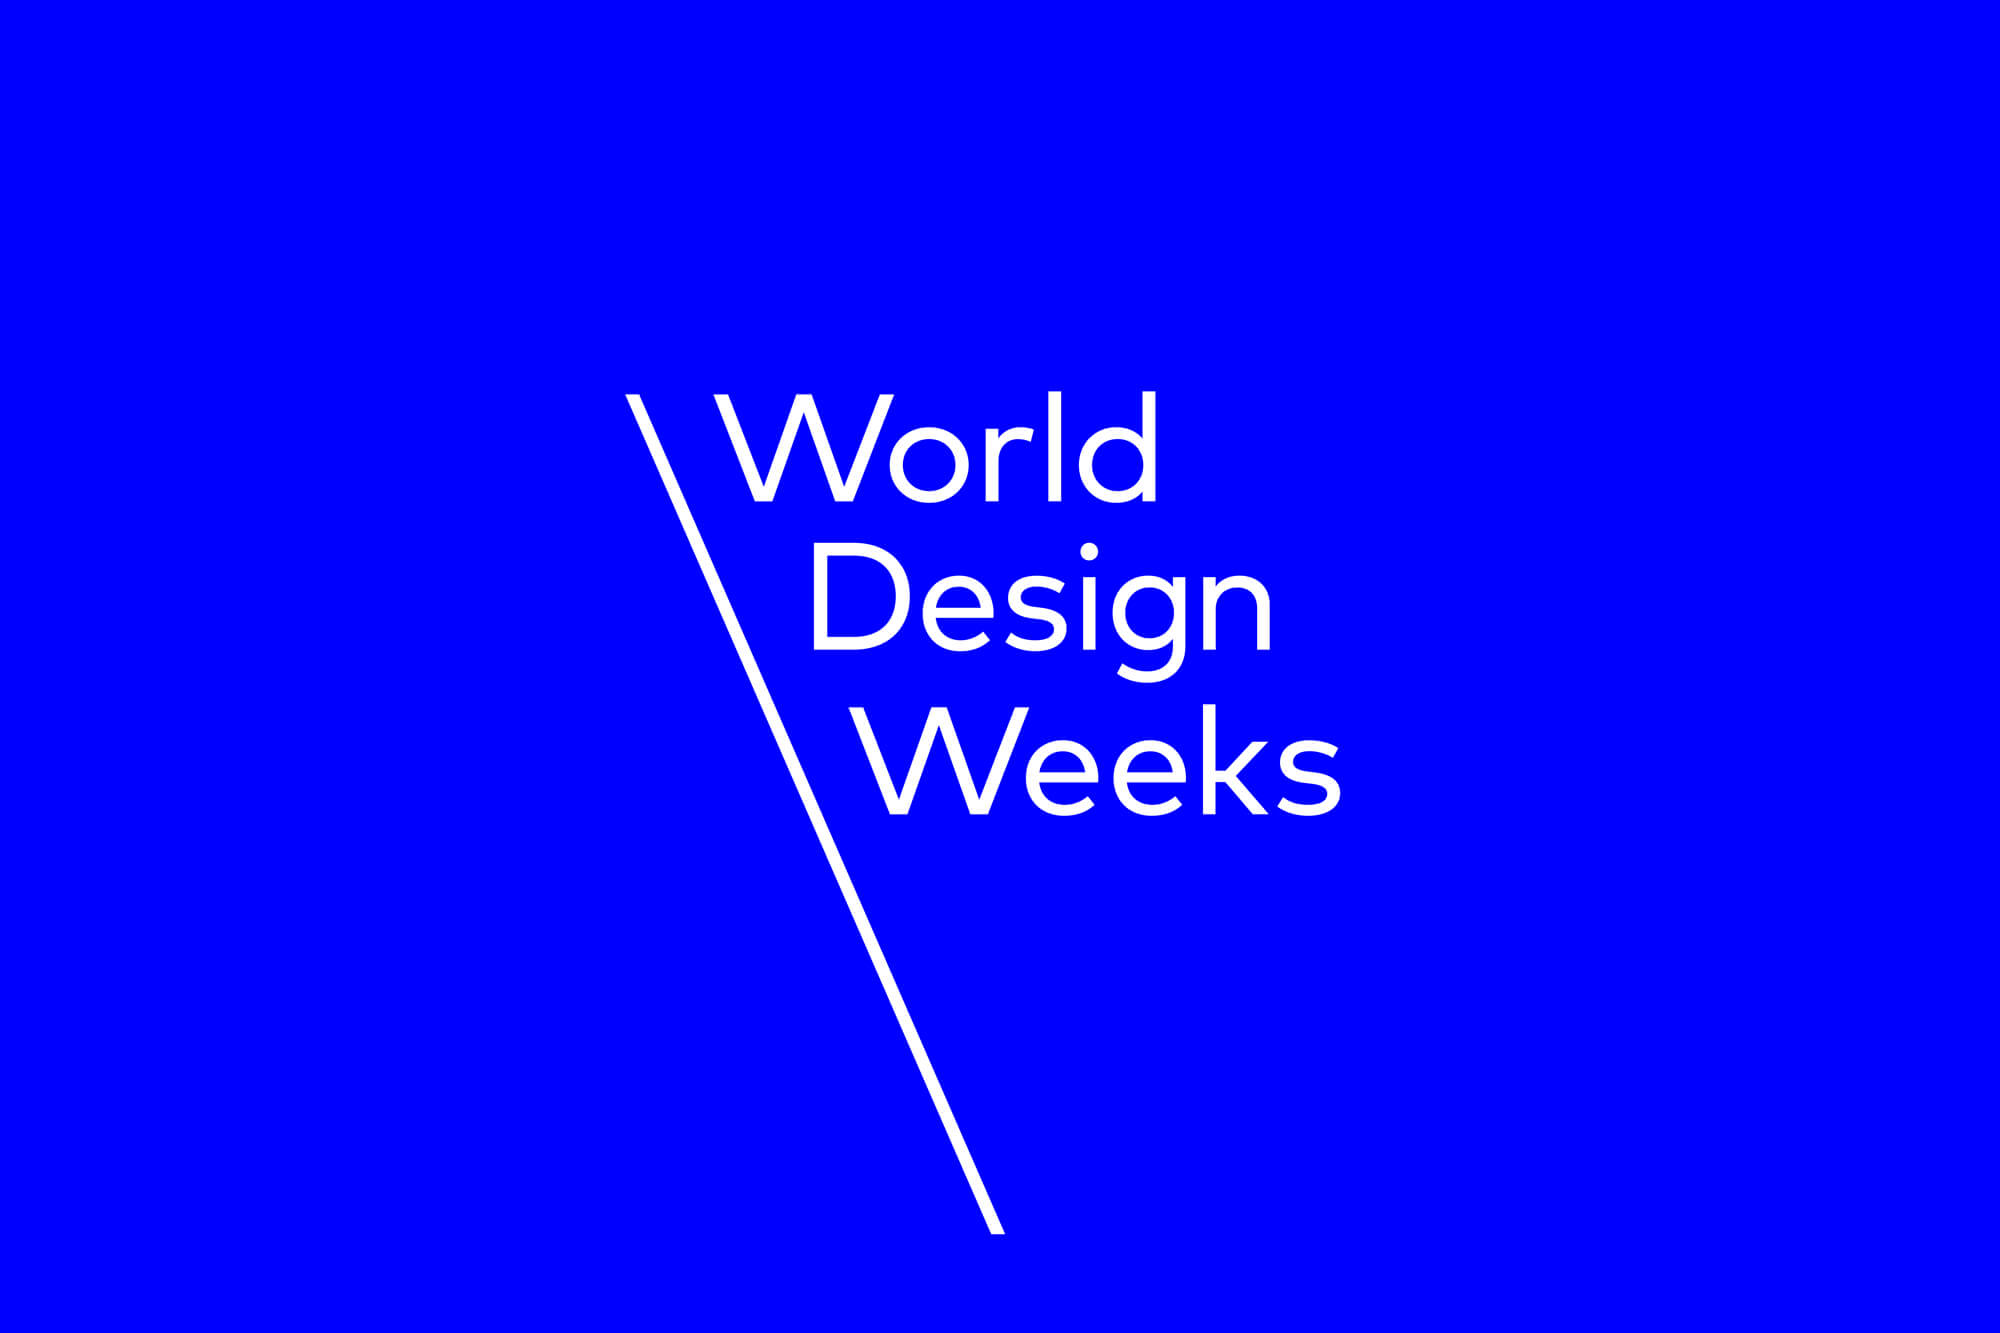 World Design Week